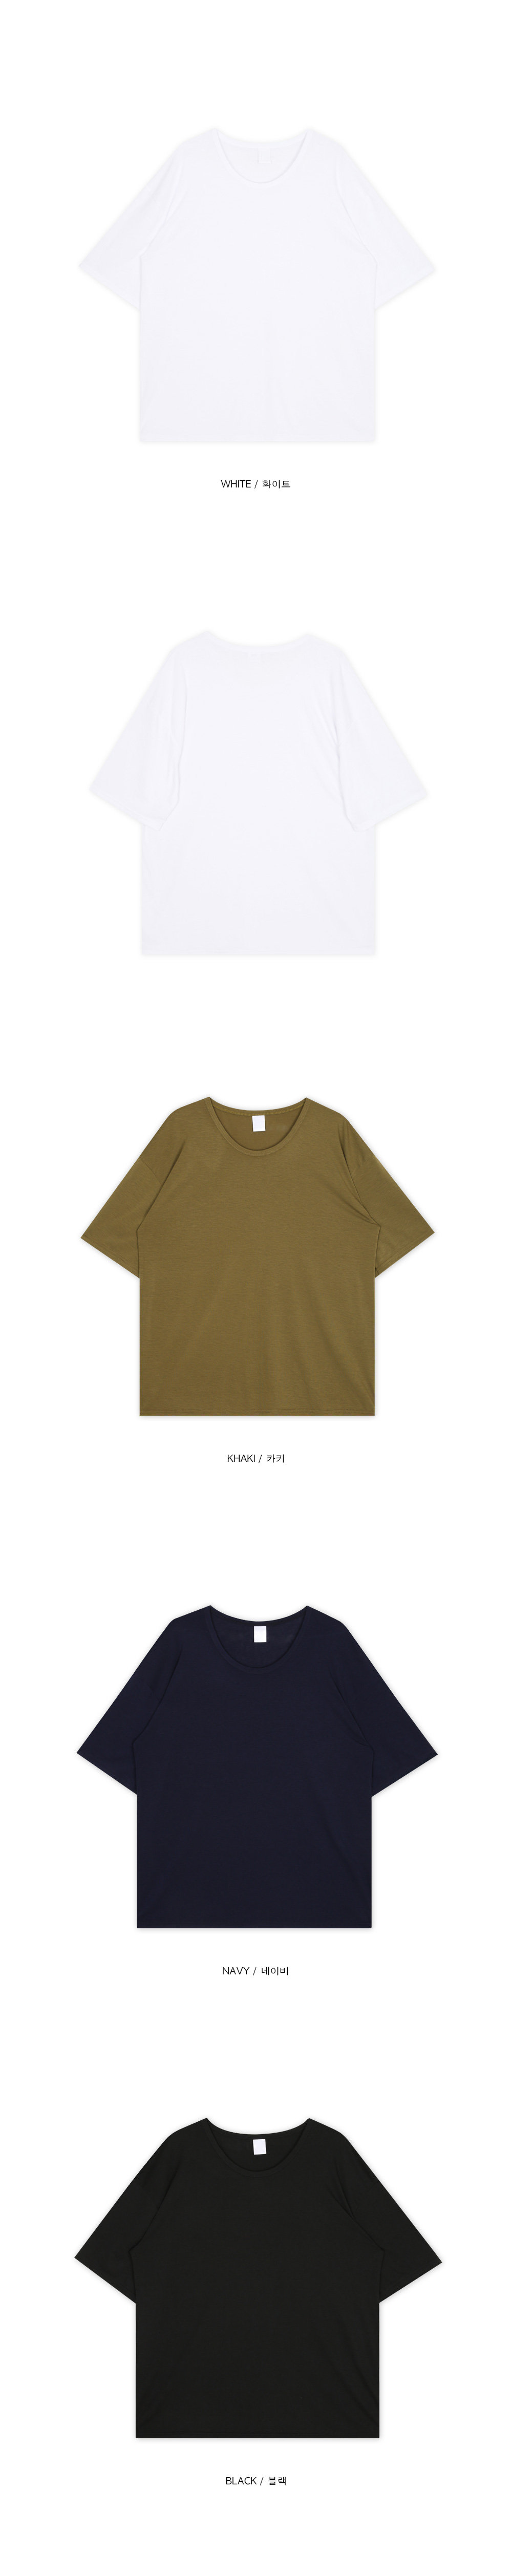 SALE basic u-neck 1/2 T (khaki) - men